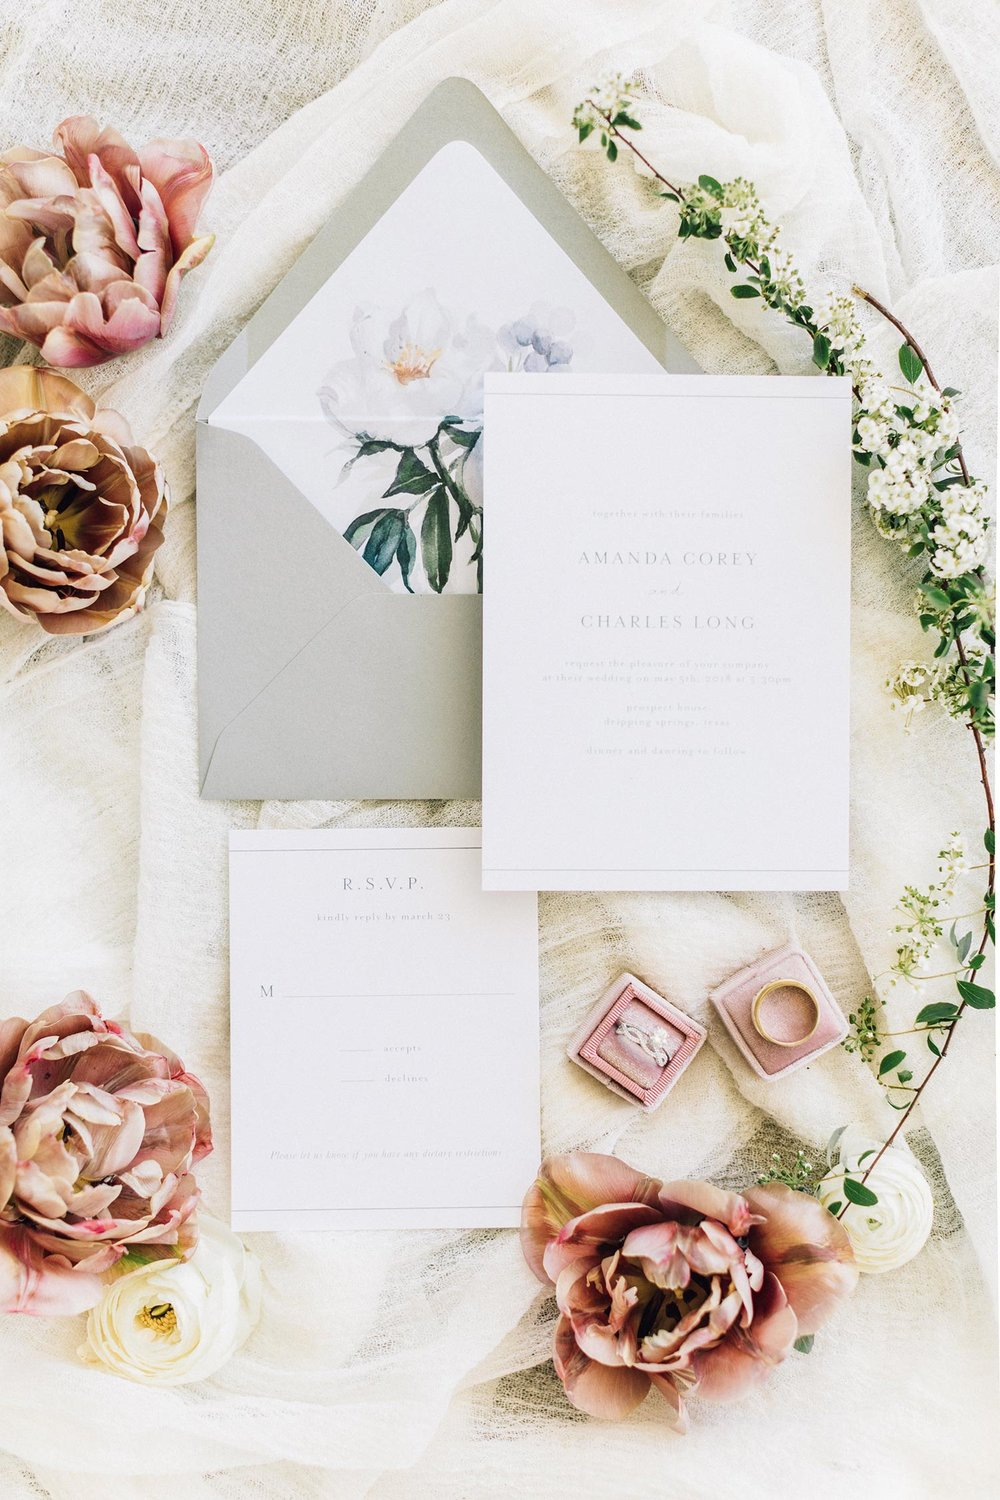 Hand-lettered stationary & flowers by Color Theory Collective